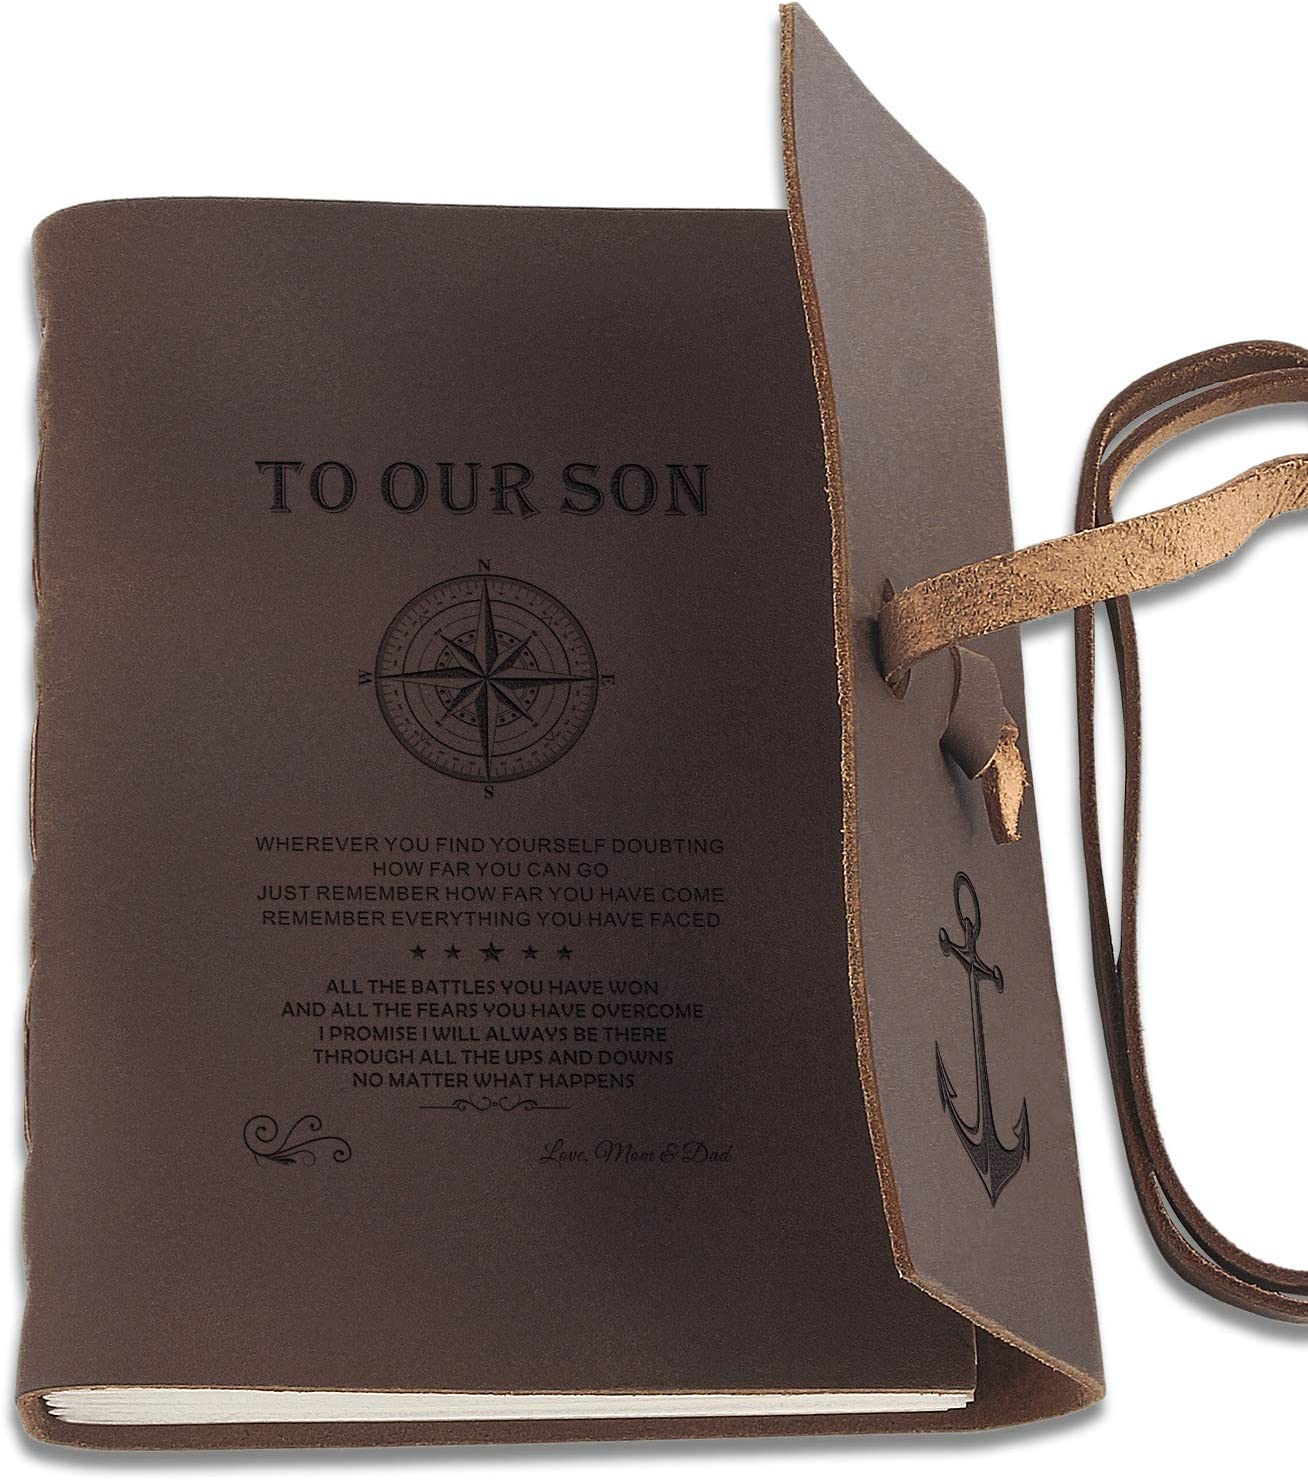 Premium Handmade Leather Journal Personalized Antique Popular brand Choice Writing No